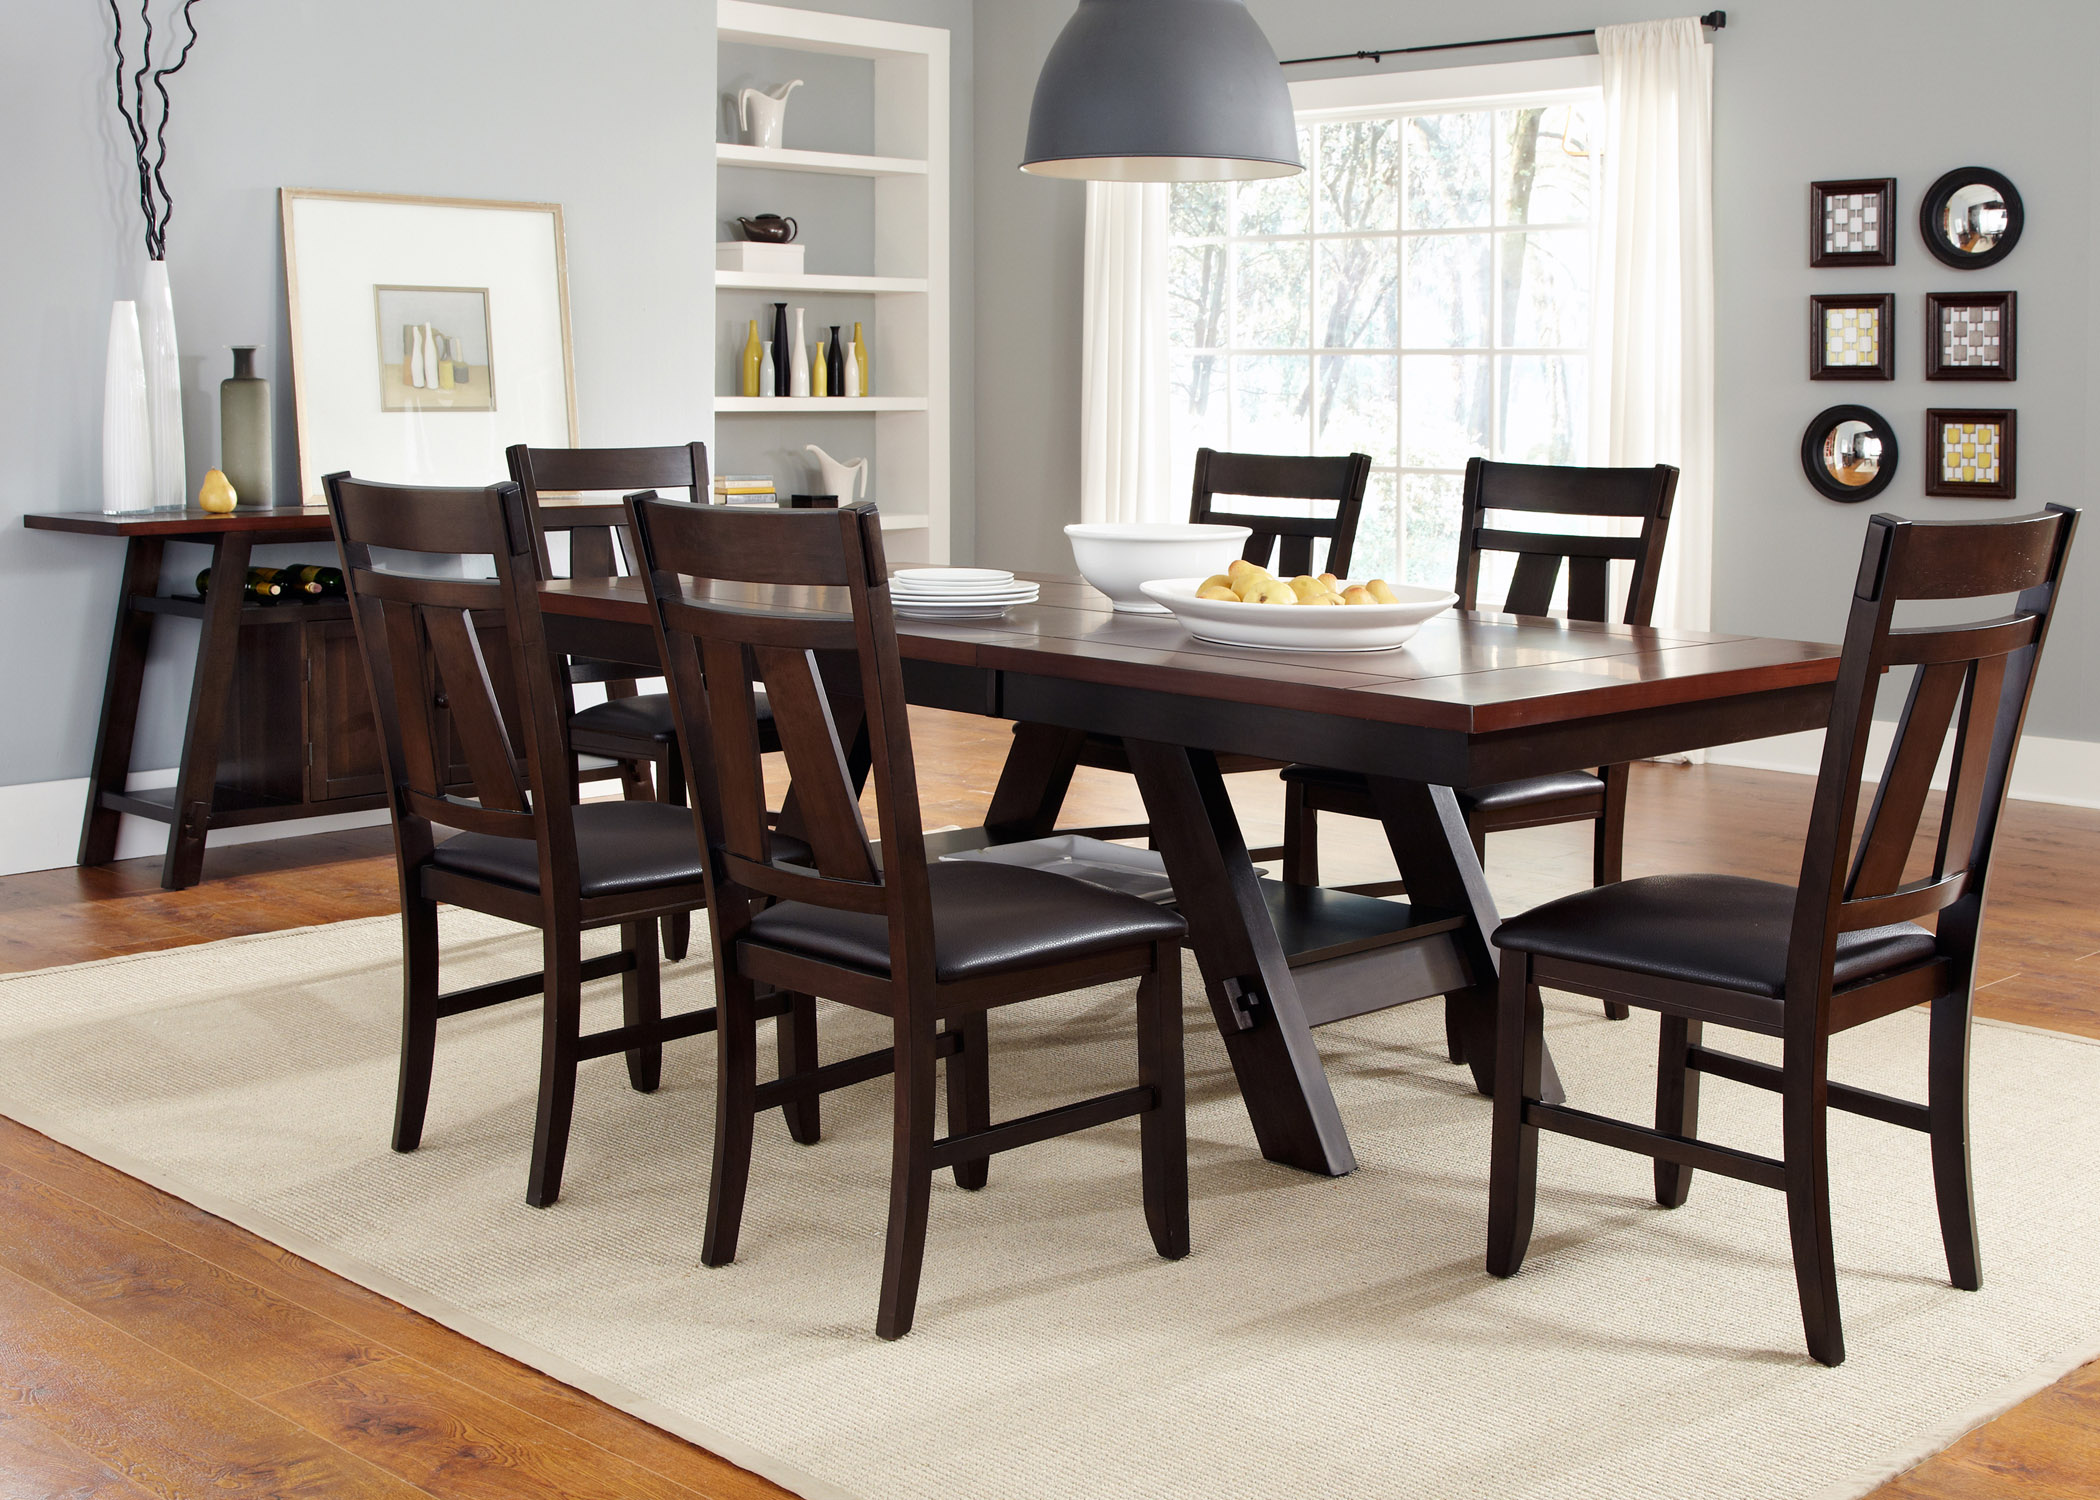 Dining room Bangor, Maine, Tables, Chairs,| Dorsey Furniture - photo#26